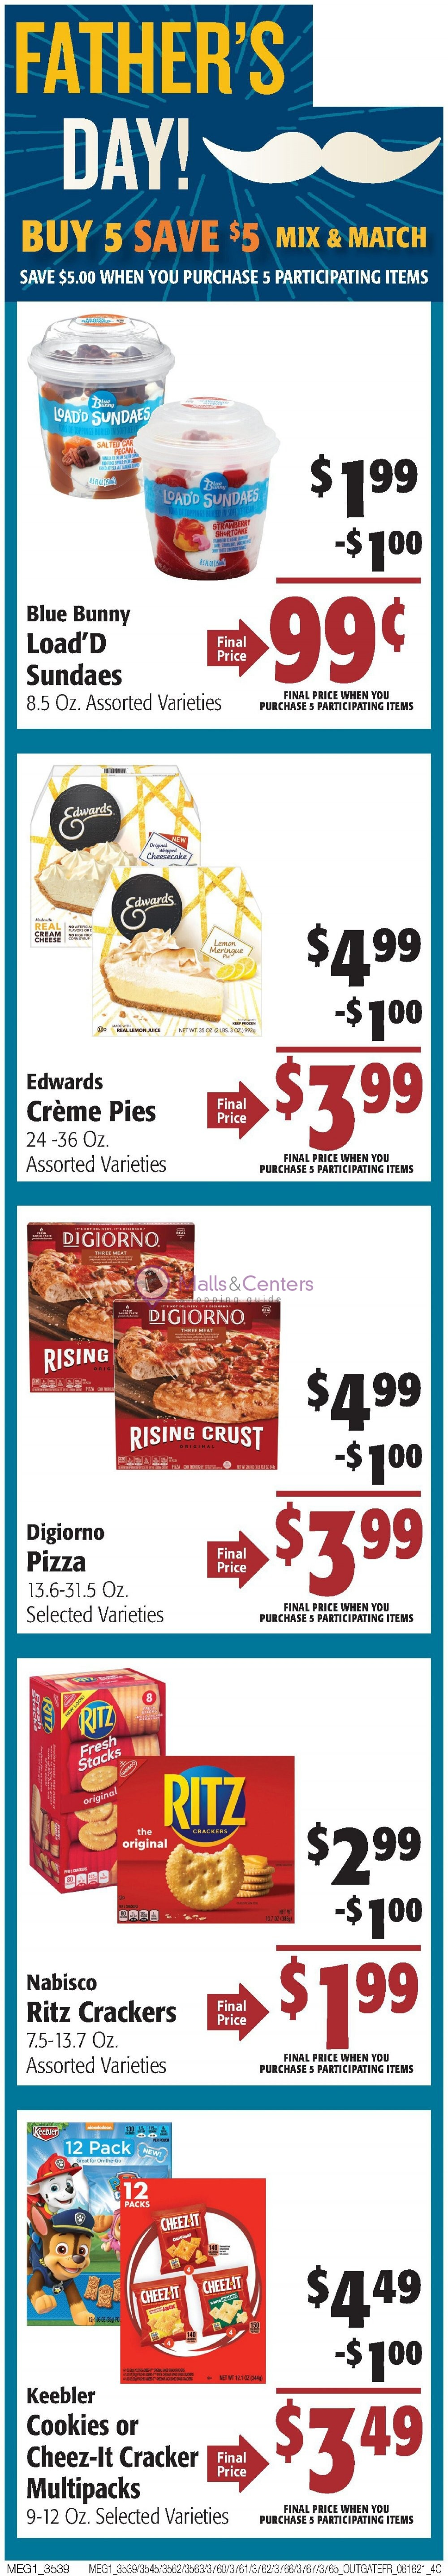 weekly ads Hays Grocer - page 1 - mallscenters.com